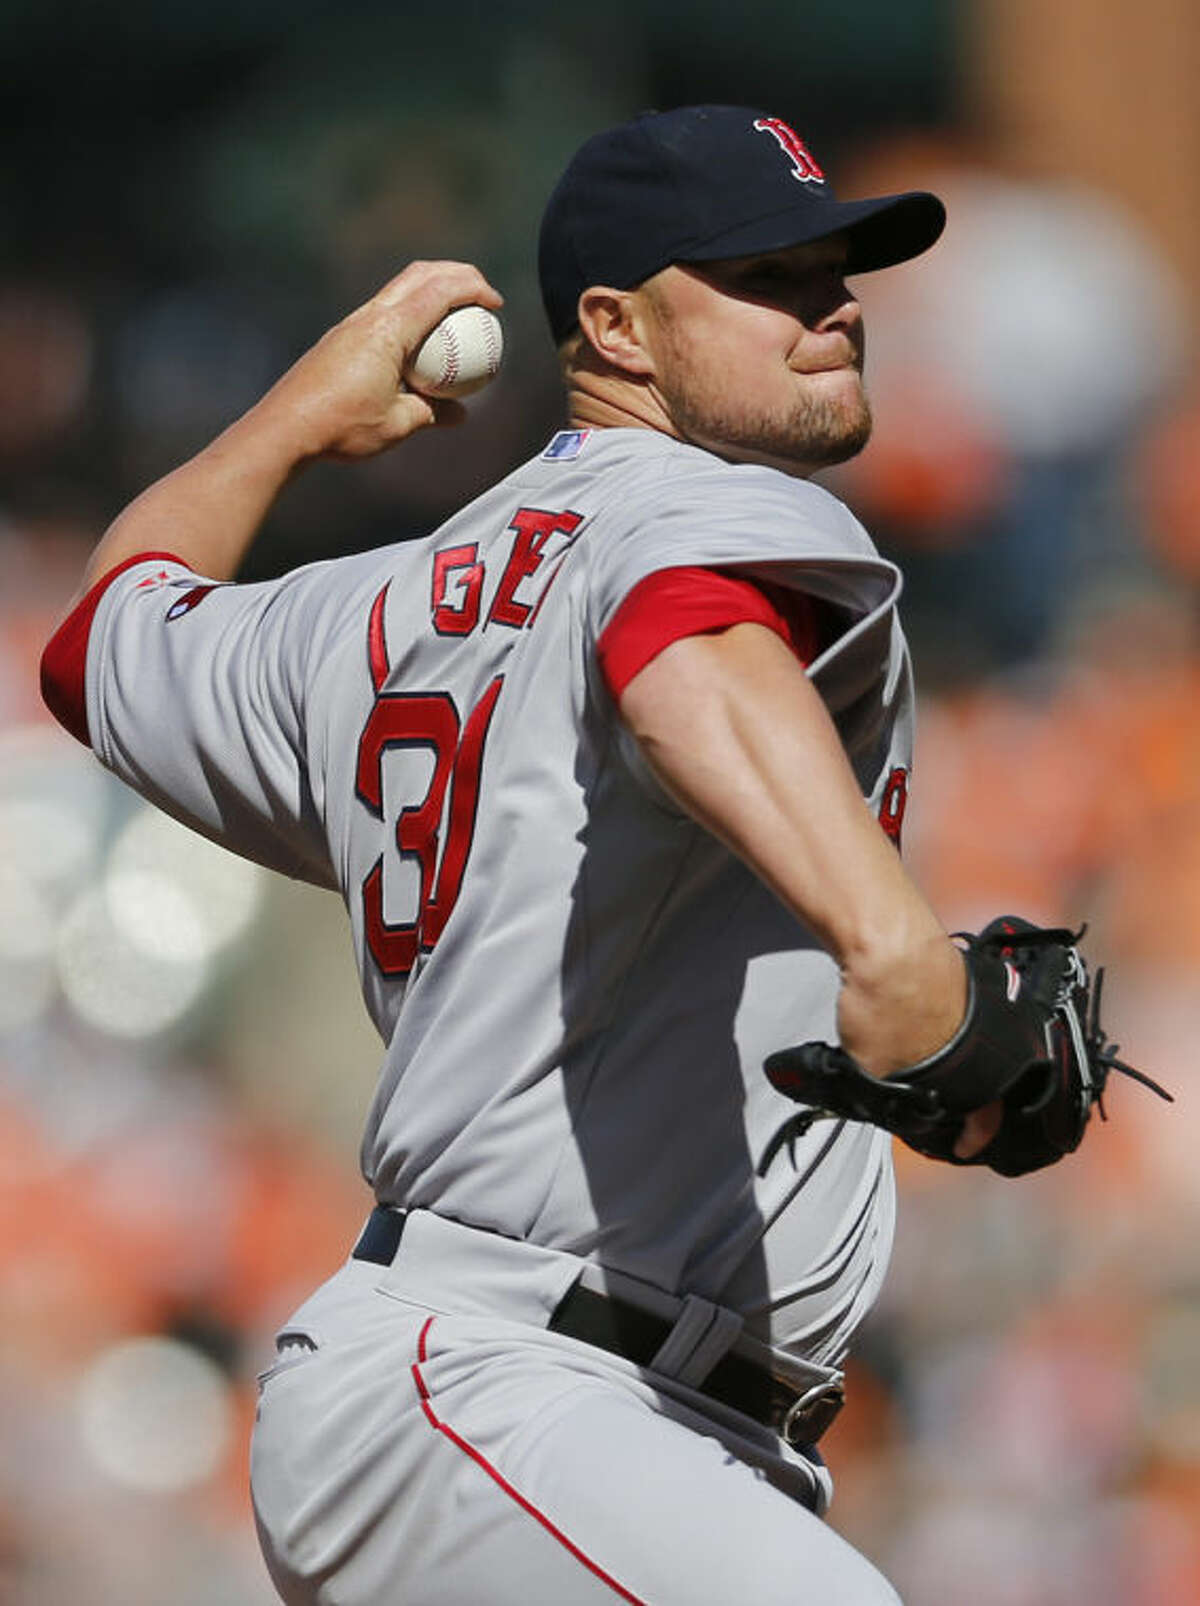 Boston Red Sox starting pitcher Jon Lester throws to the Baltimore Orioles in the first inning of an opening day baseball game, Monday, March 31, 2014, in Baltimore. (AP Photo/Patrick Semansky)